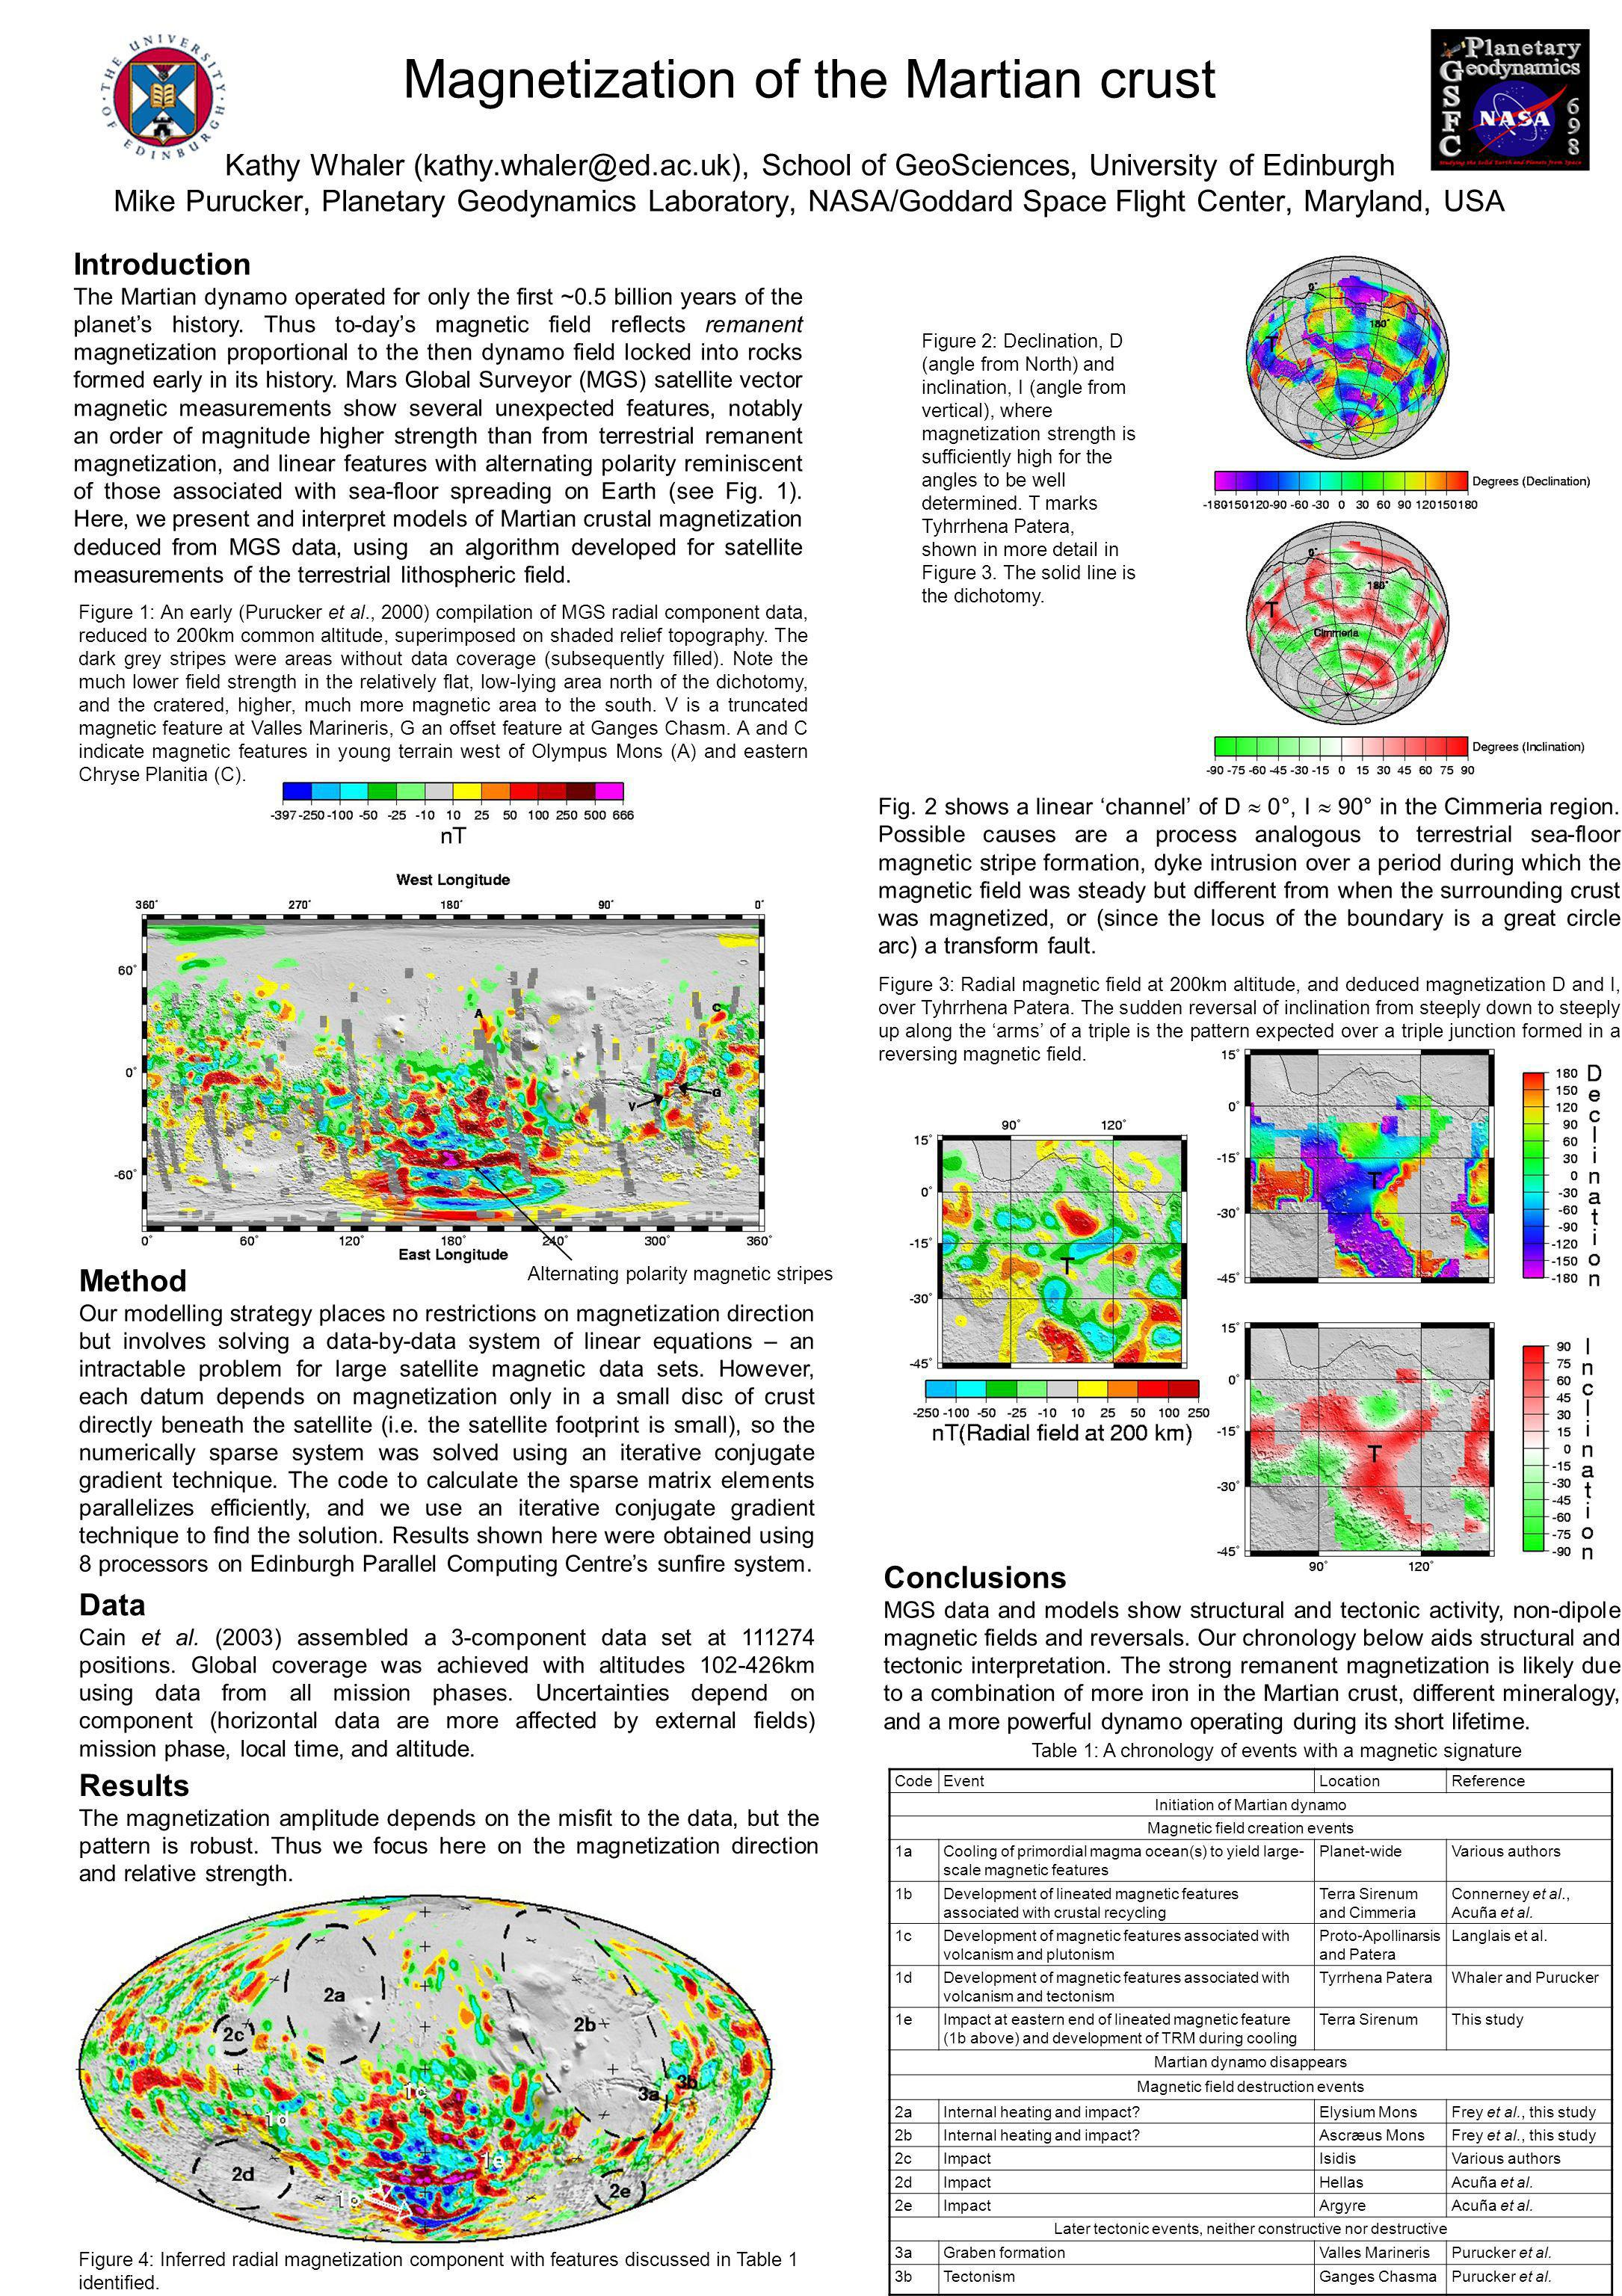 Magnetization of the Martian crust Kathy Whaler (kathy.whaler@ed.ac.uk), School of GeoSciences, University of Edinburgh Mike Purucker, Planetary Geodynamics Laboratory, NASA/Goddard Space Flight Center, Maryland, USA Introduction The Martian dynamo operated for only the first ~0.5 billion years of the planet's history.